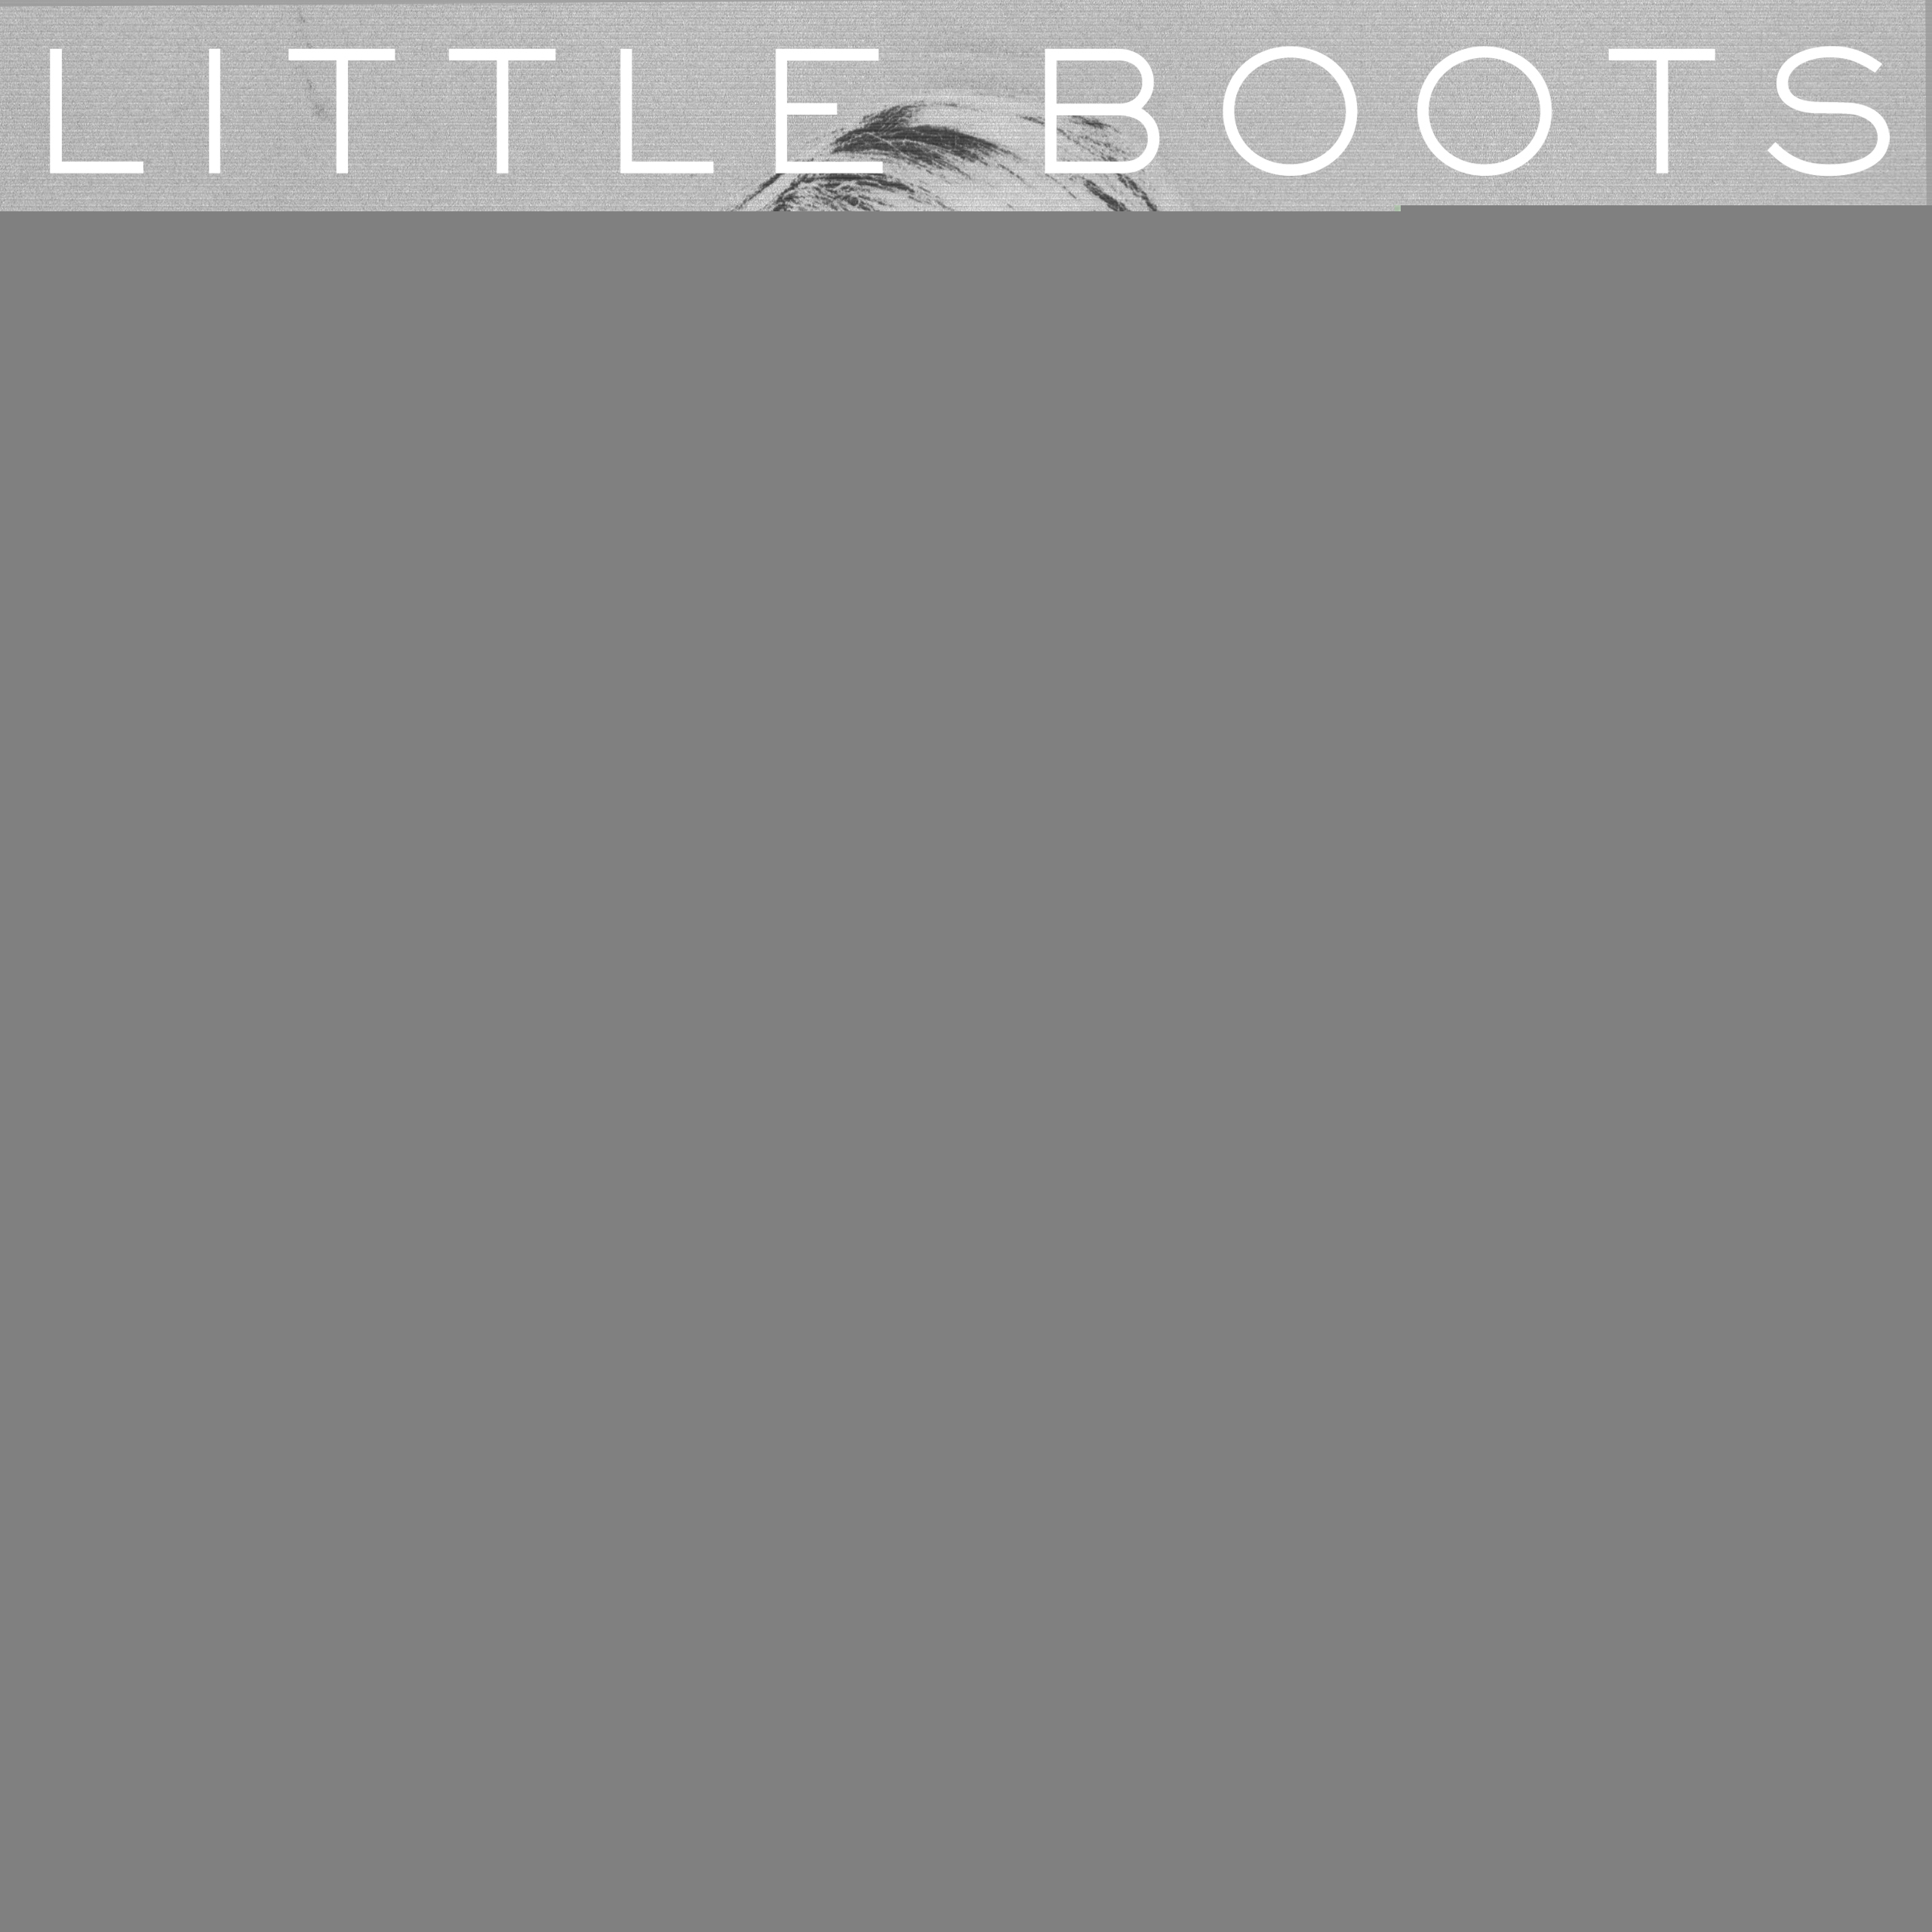 Little Boots Headphones cover art